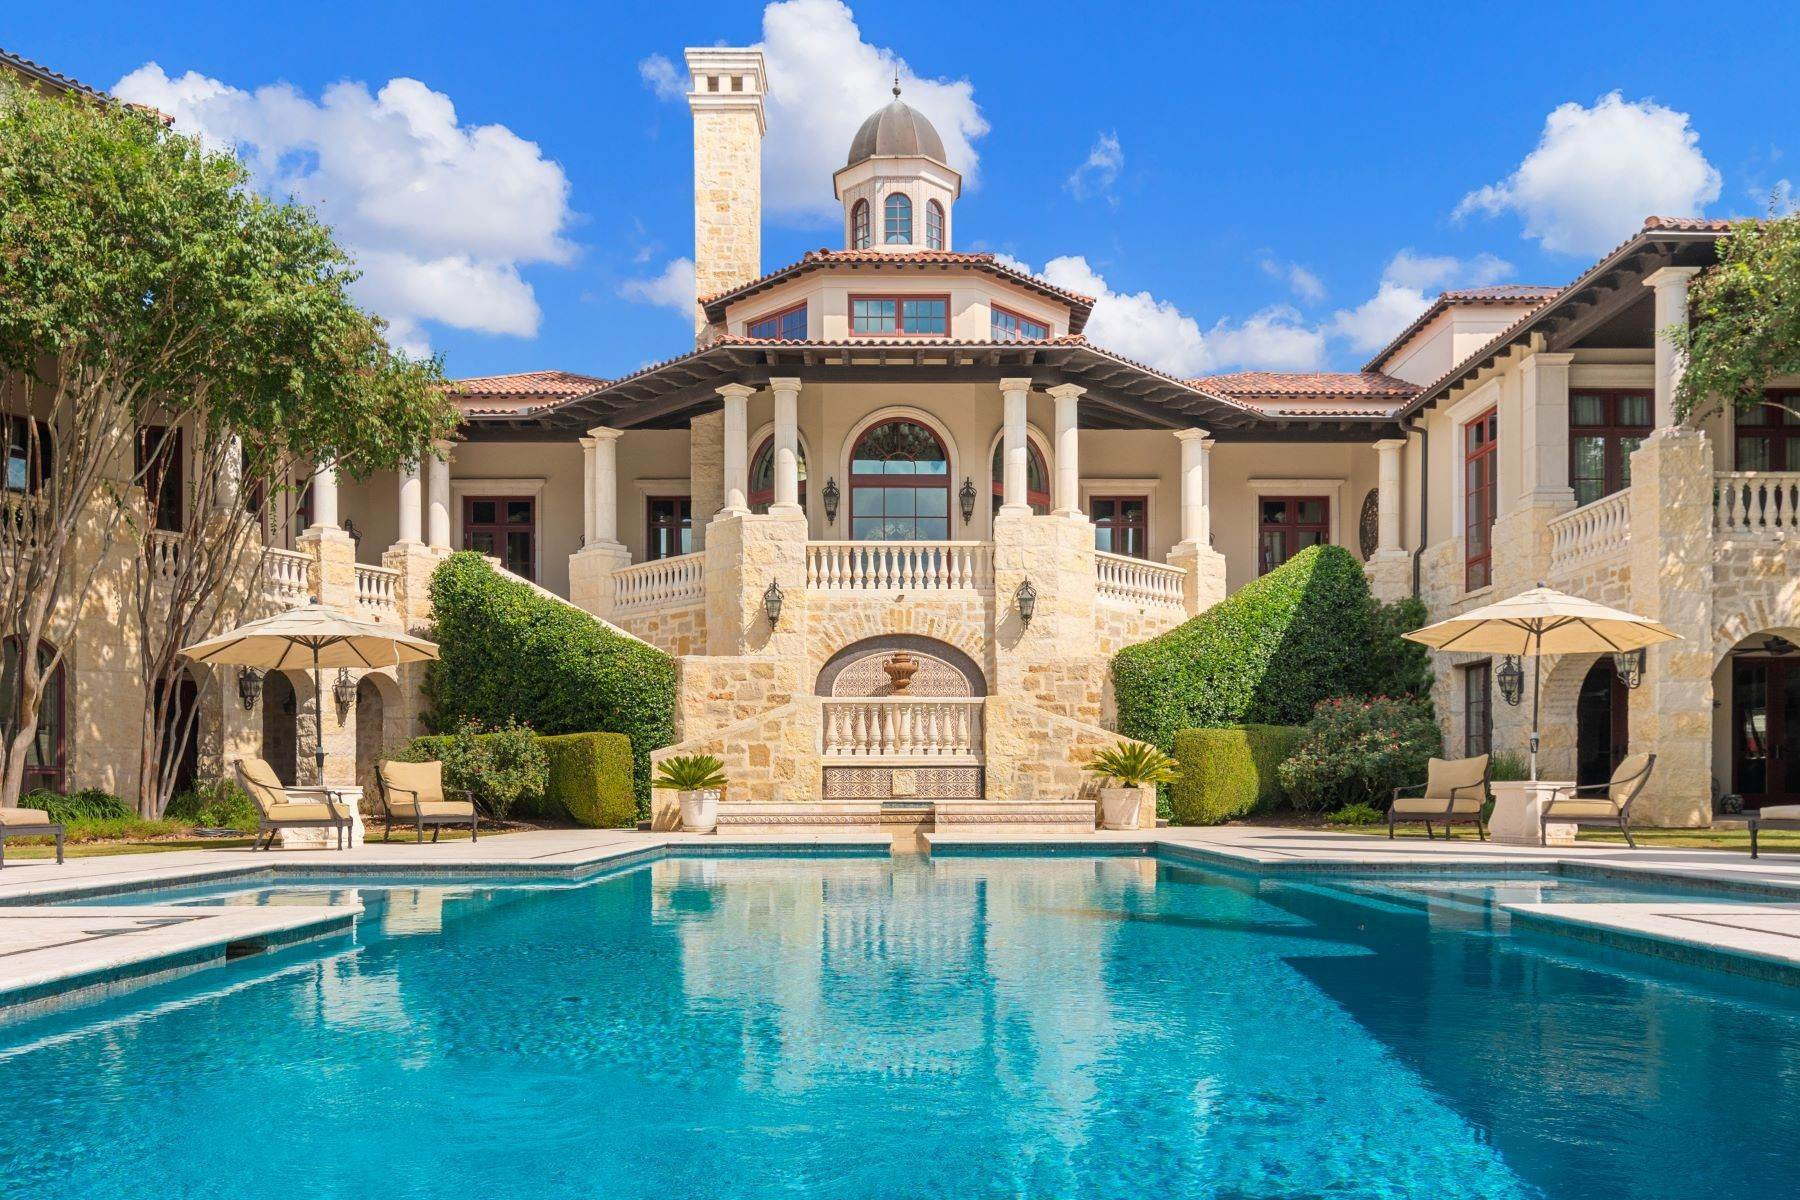 Single Family Homes por un Venta en Palatial Italian Villa in The Dominion 14 Crescent Park San Antonio, Texas 78257 Estados Unidos